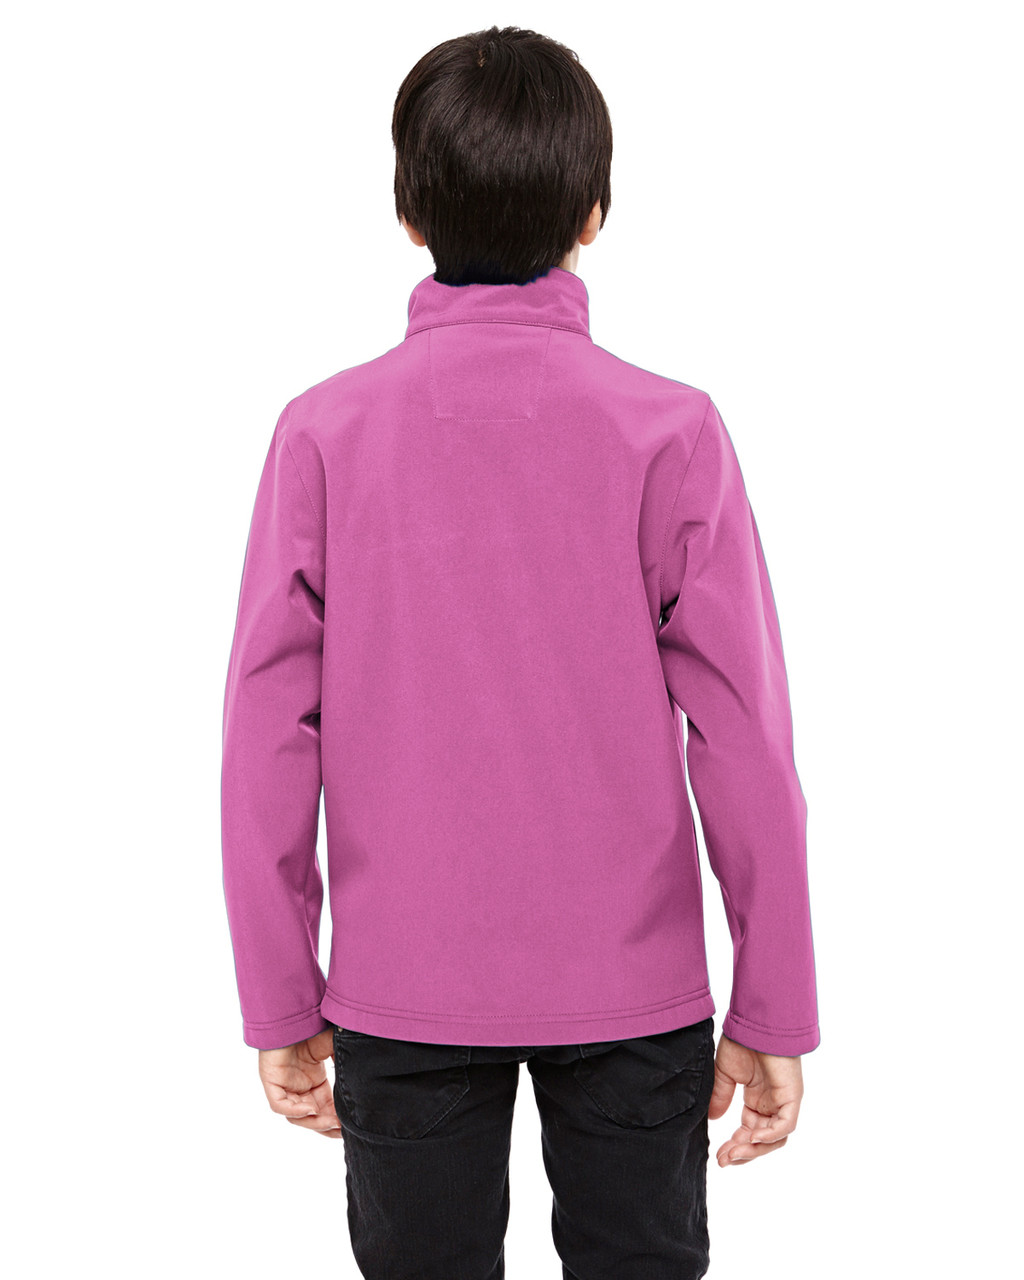 Sport Charity Pink - Back, TT80Y Team 365 Youth Leader Soft Shell Jacket | BlankClothing.ca